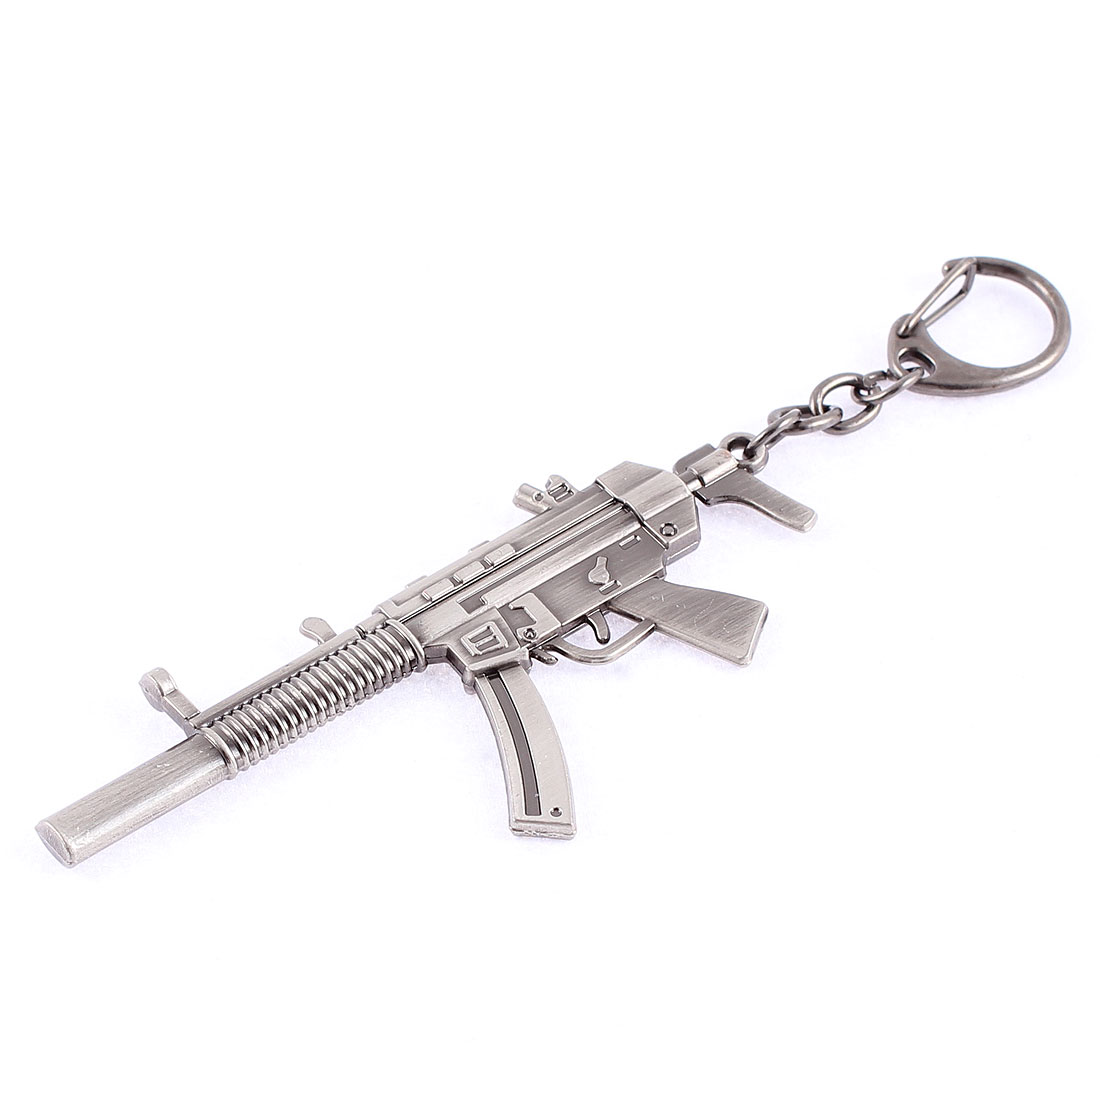 Flint Gray Metal MP5 Submachine Gun Design Keyring Pendant